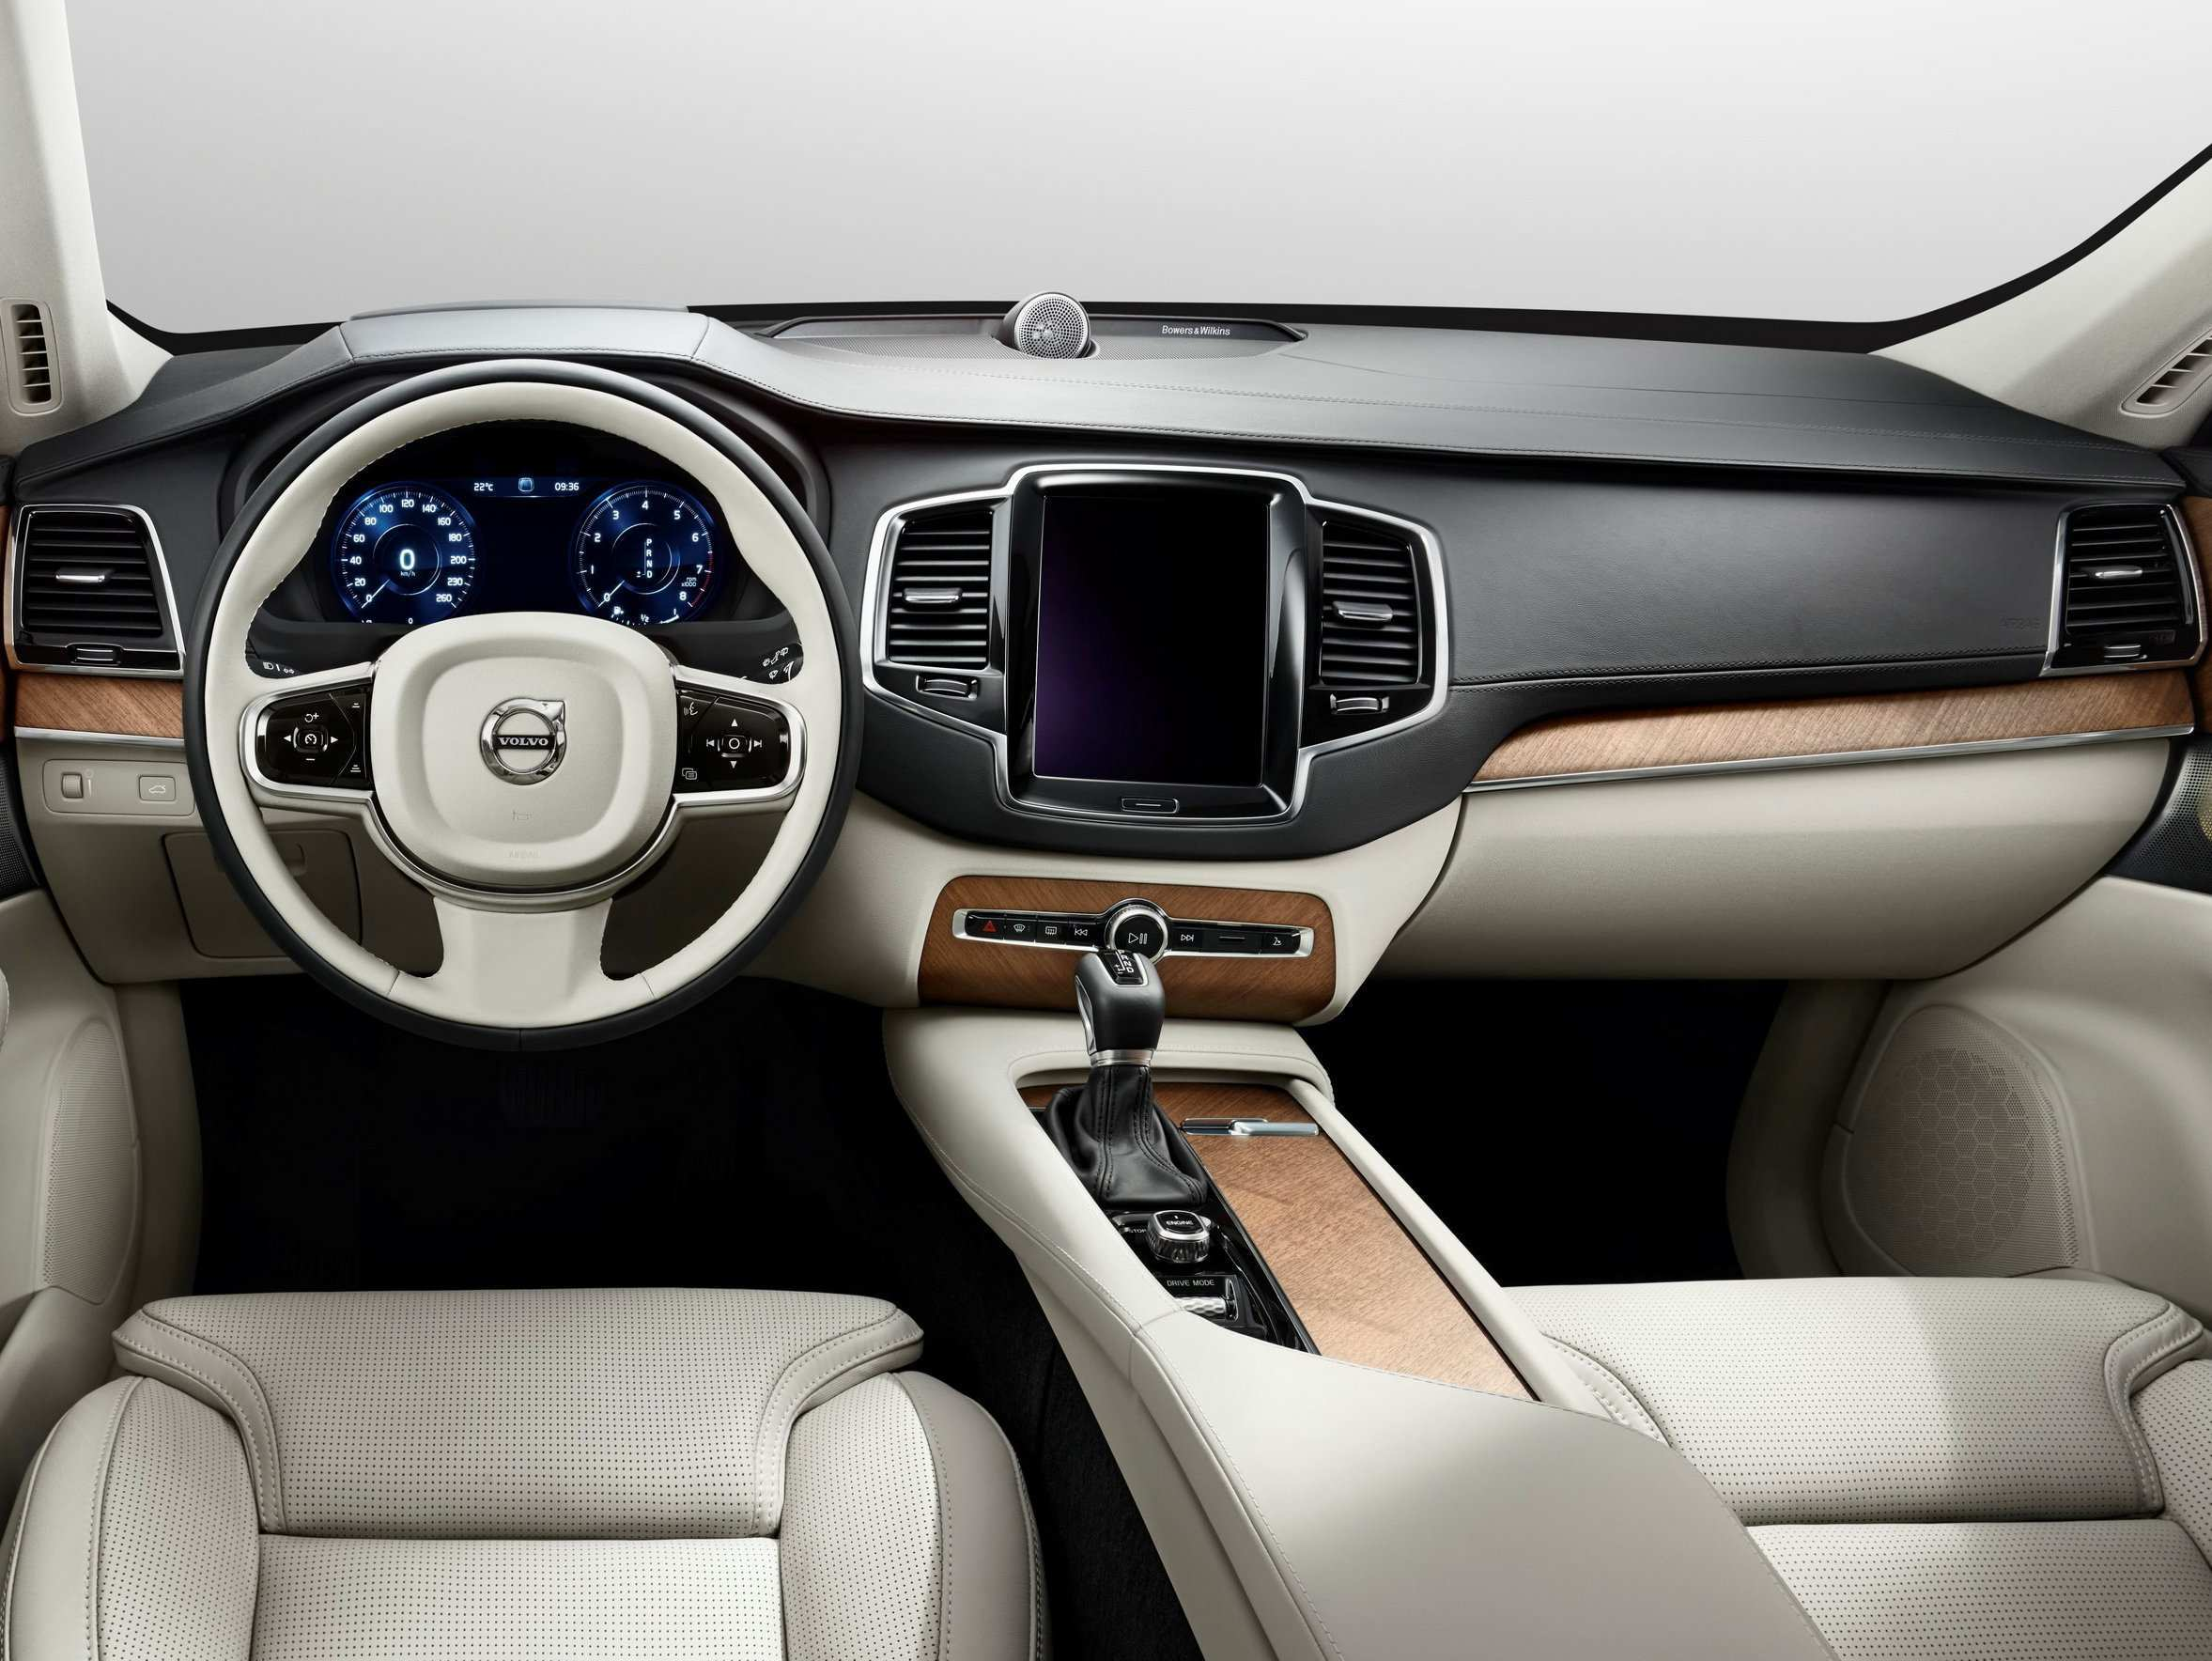 32 All New Volvo Xc90 2019 Interior Release Date